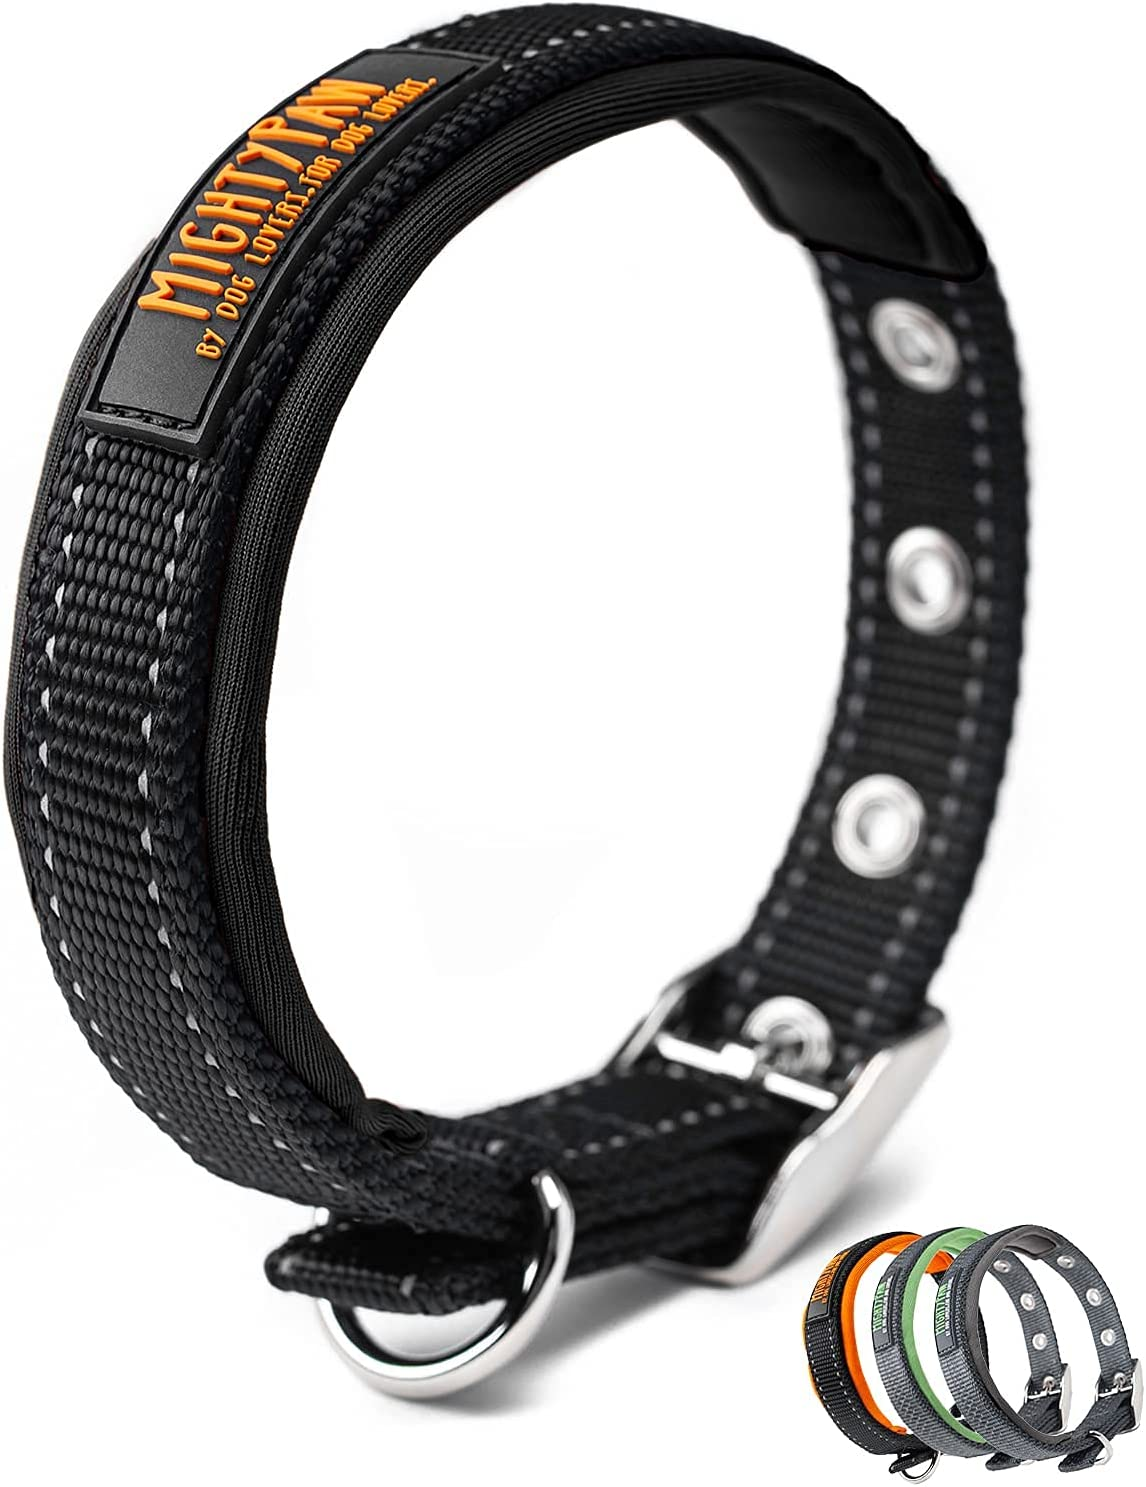 Mighty In stock Paw Ultra Soft Dog New York Mall Comfort wit Collar Pet Padded